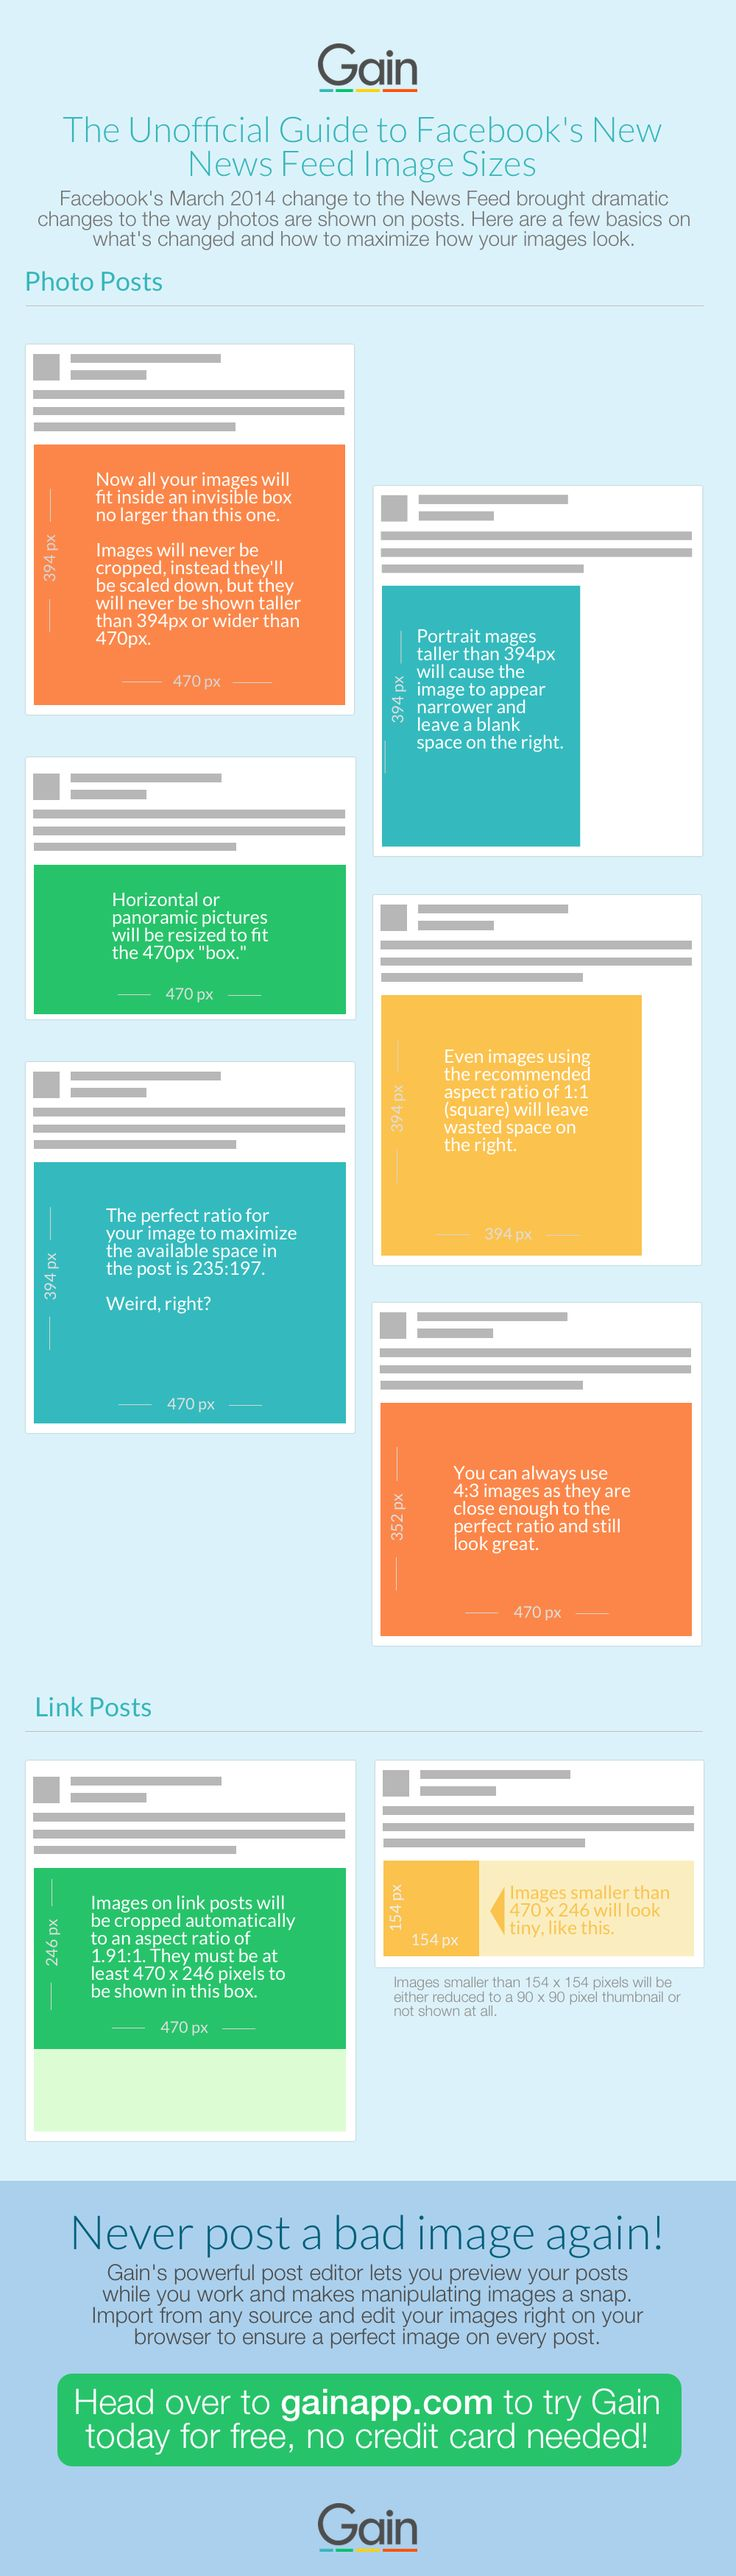 The Unofficial Guide to Facebook's New News Feed Image Sizes  #Infographic #Facebook #SocialMedia